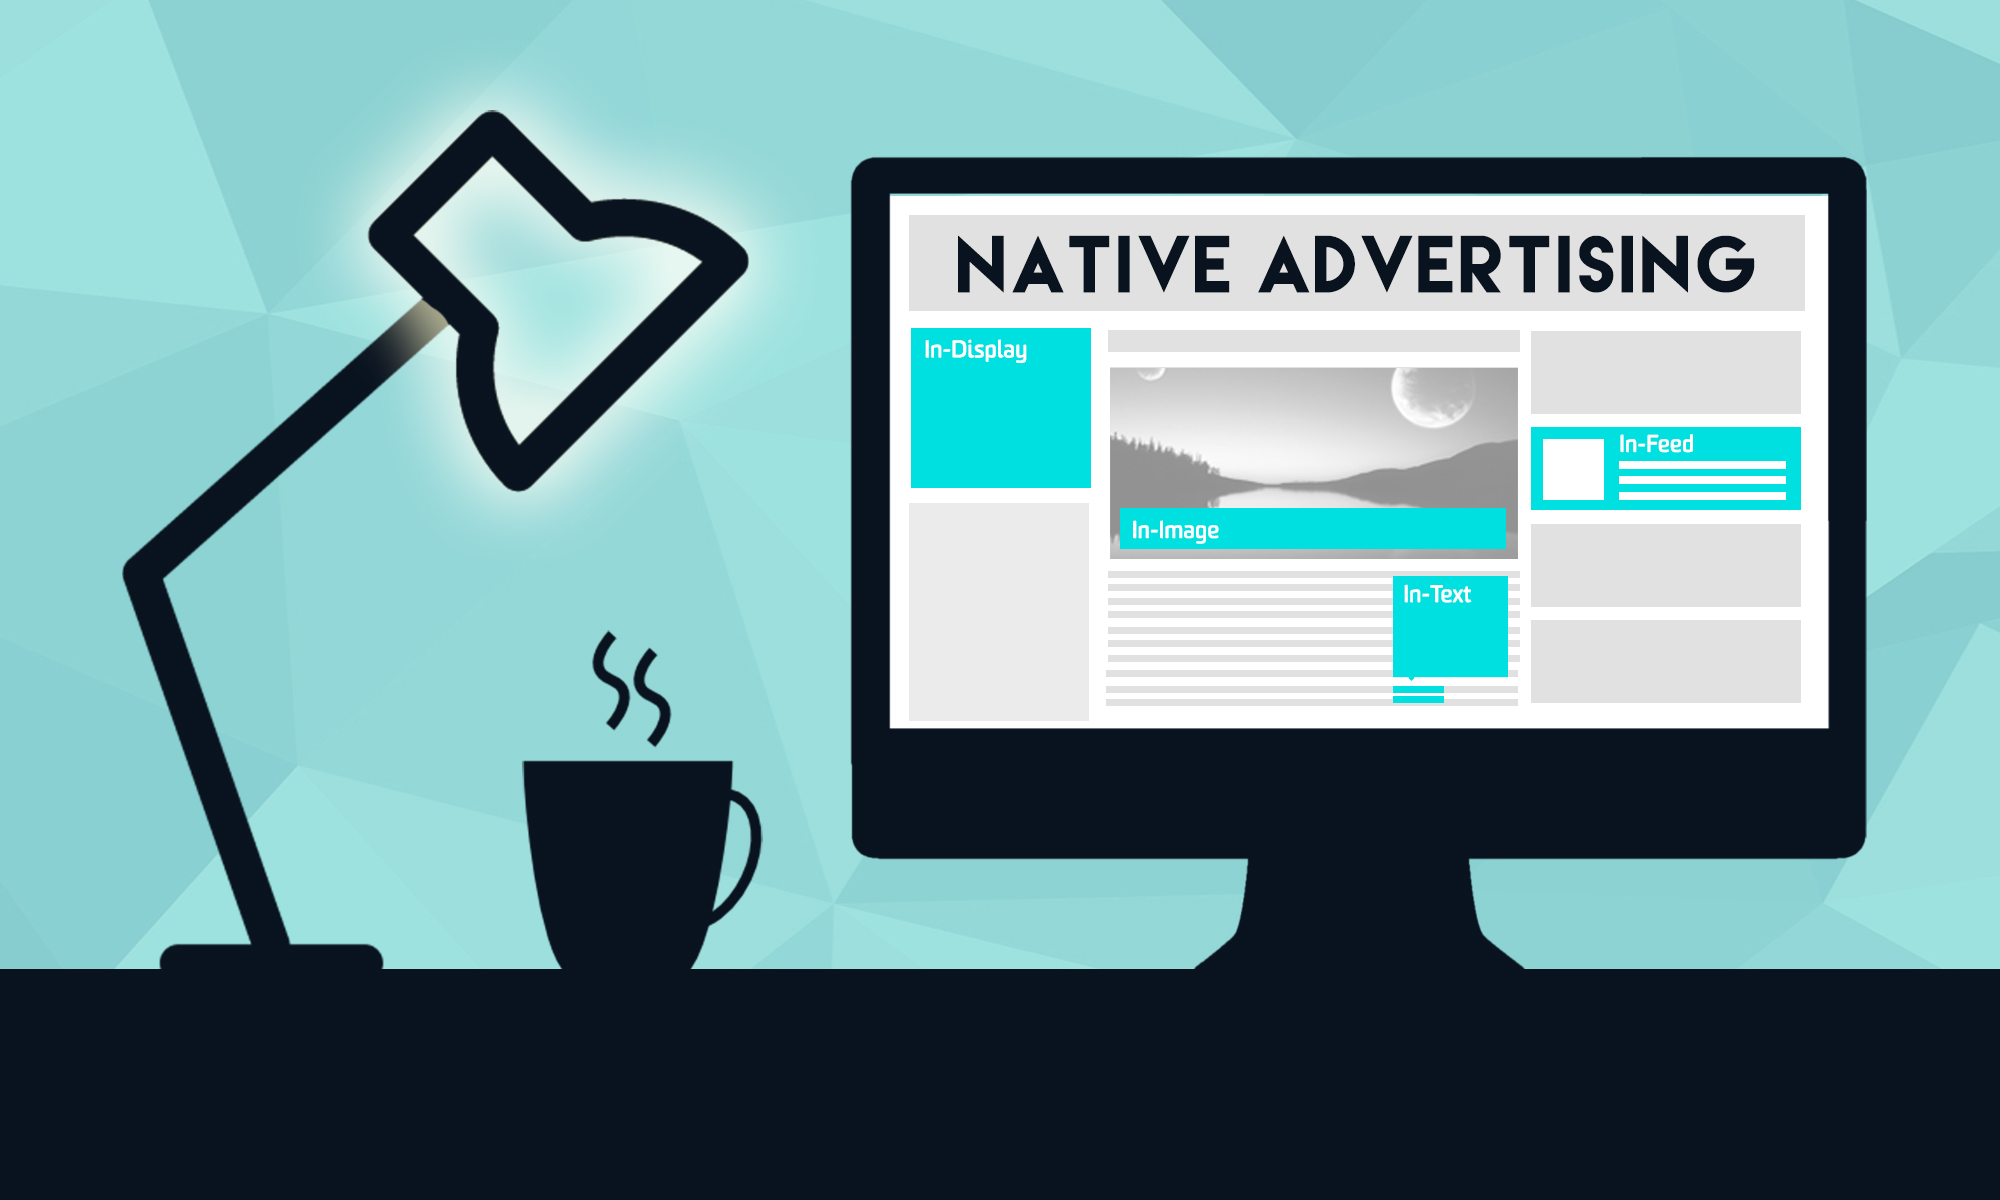 Ad-Blocking-Will-Push-Native-Advertising-in-2016-In-Feed-Video-Big-Focus.jpg